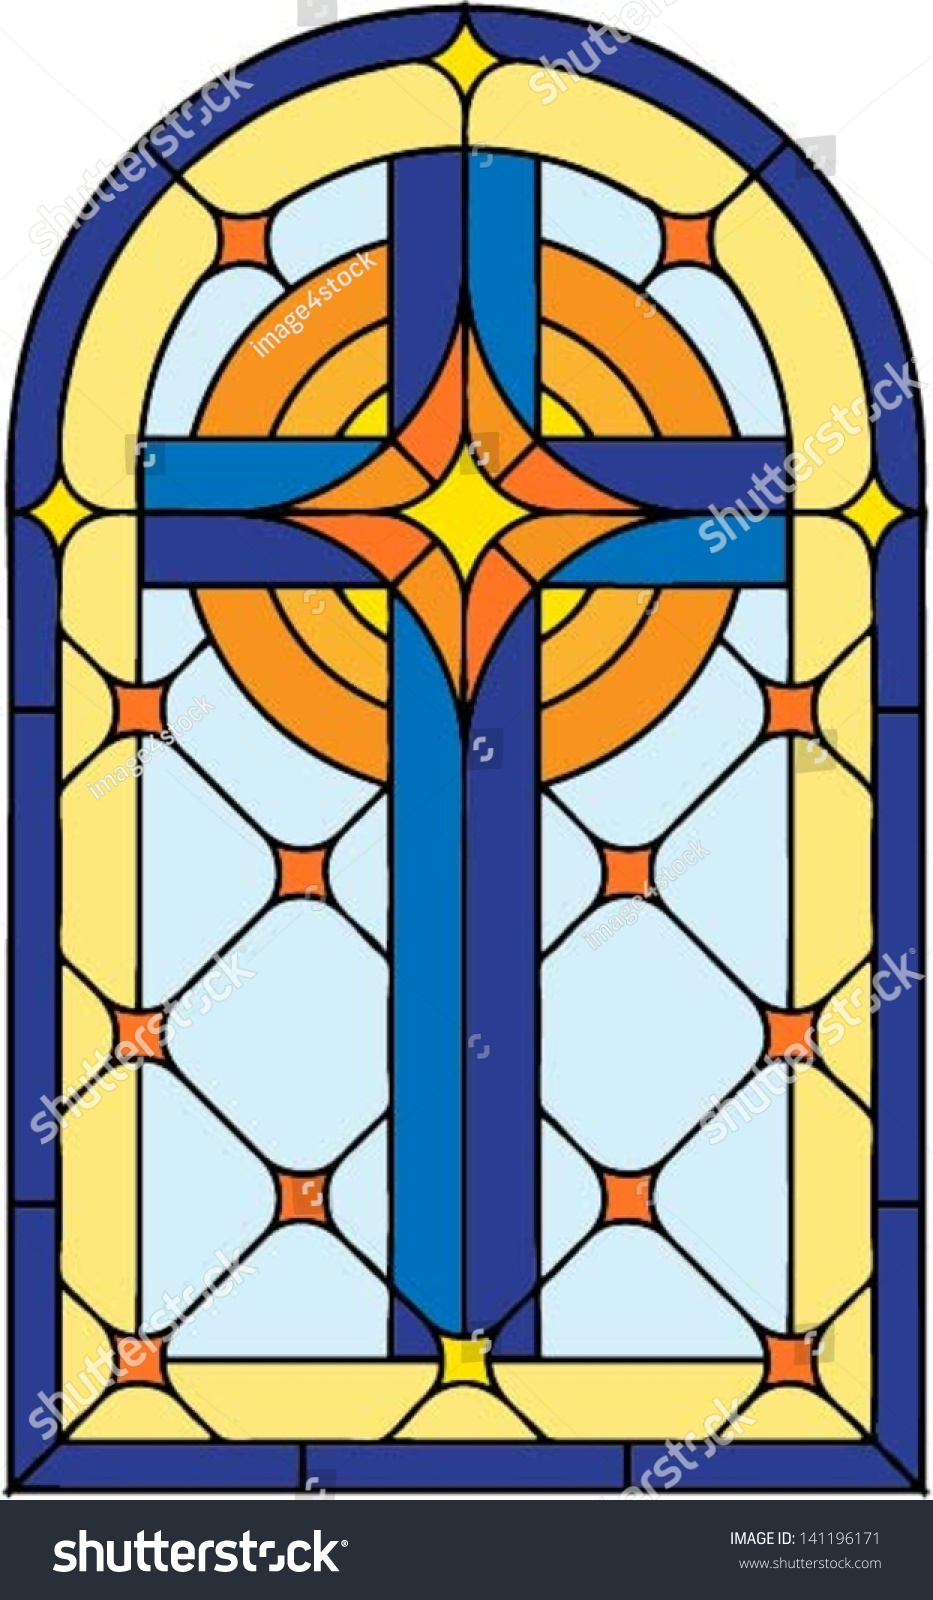 Window cross vector illustration stained glass stock for Window design clipart